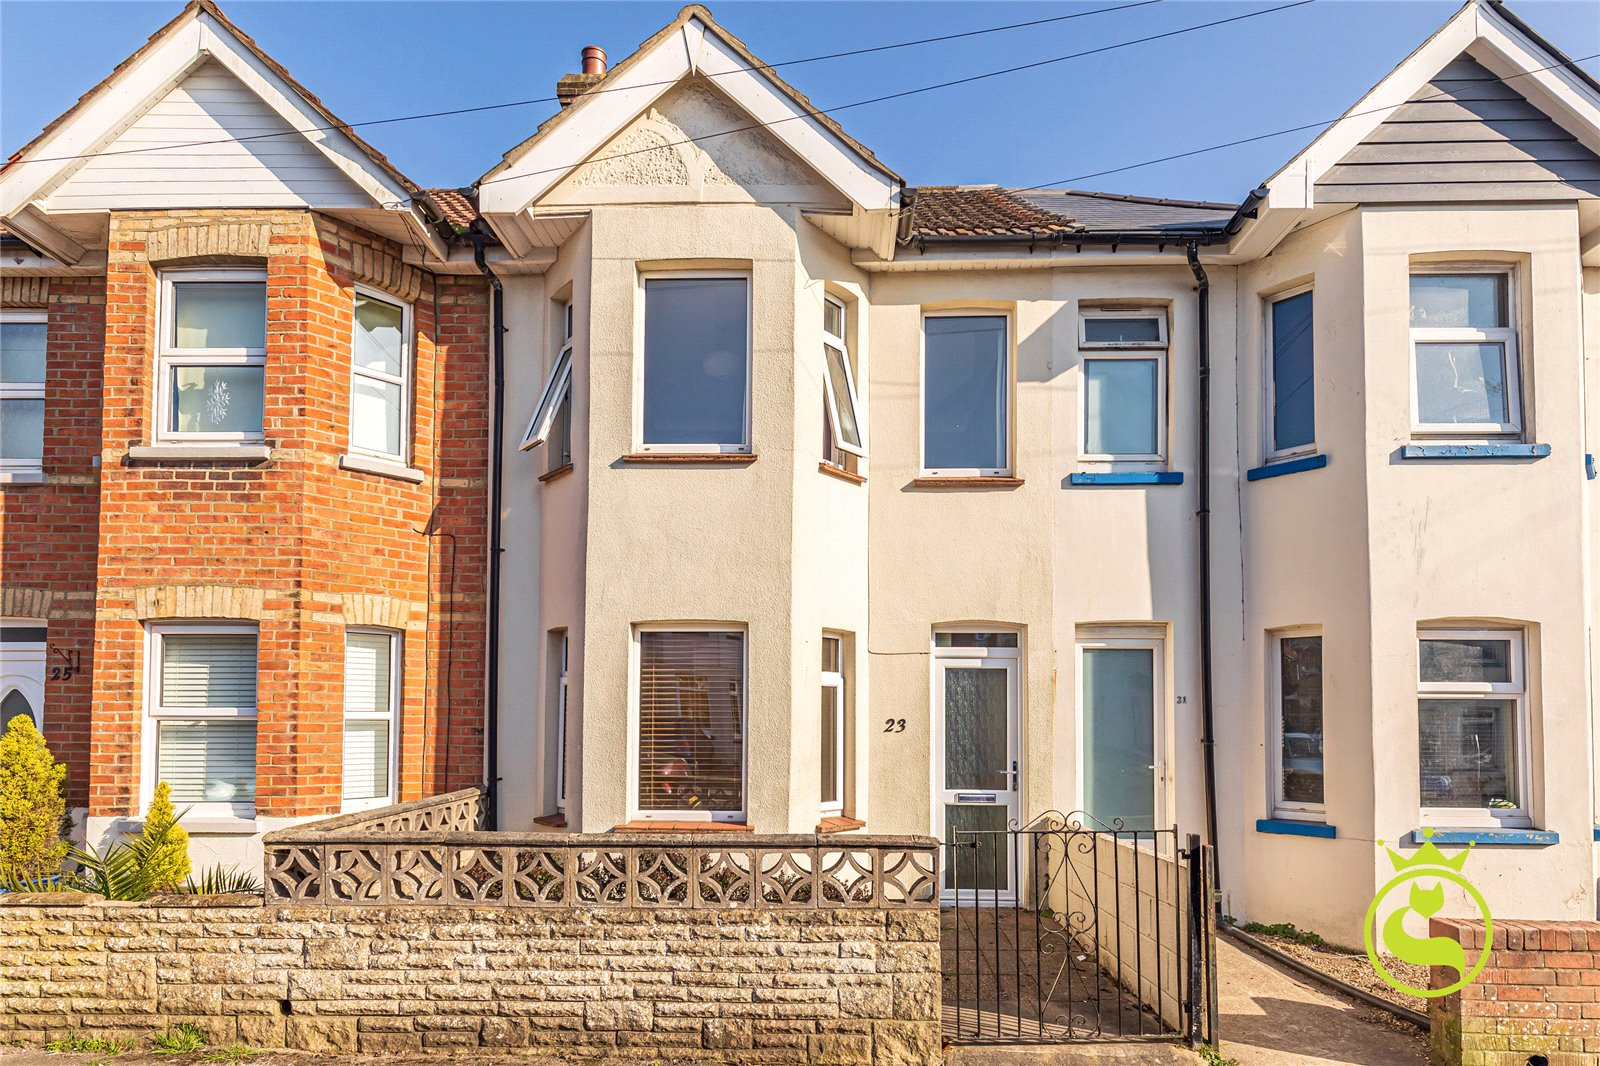 2 bed house to rent in Weymouth Road, Poole, BH14